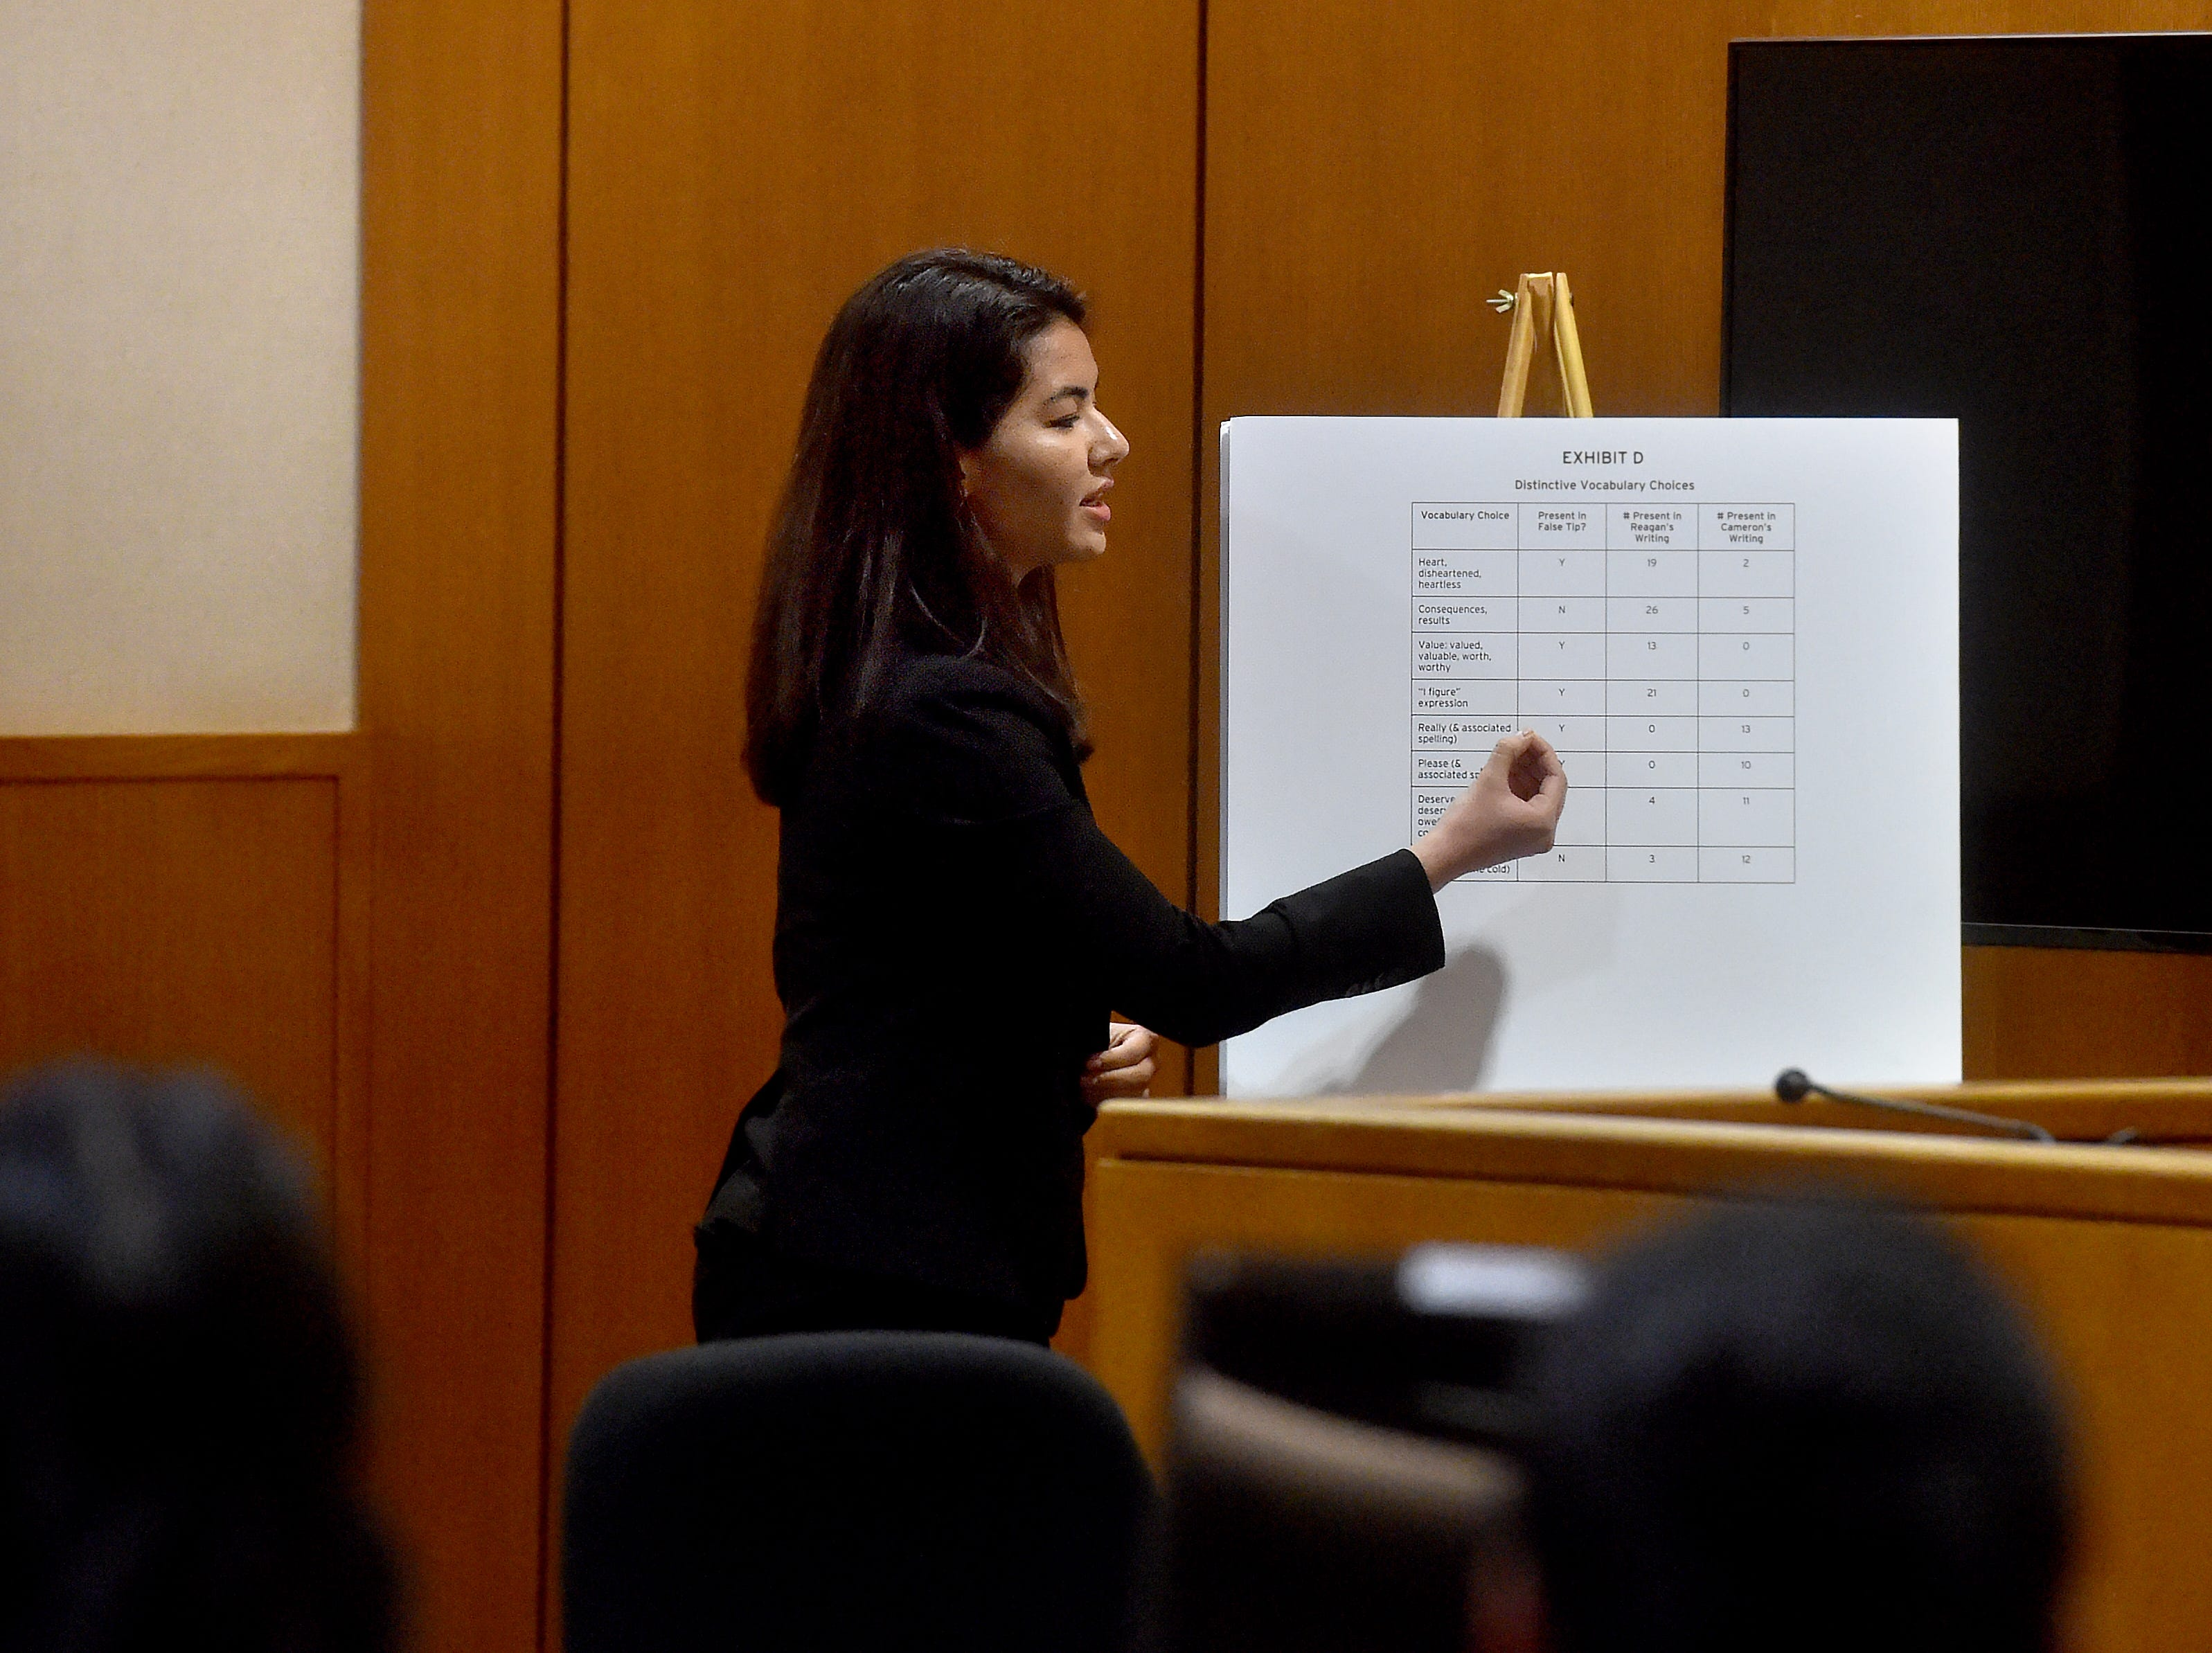 Paige Barrella, of Santa Susana High in Simi Valley, portrays expert witness Dr. Blake Williams during the Ventura County Mock Trial competition on Thursday.